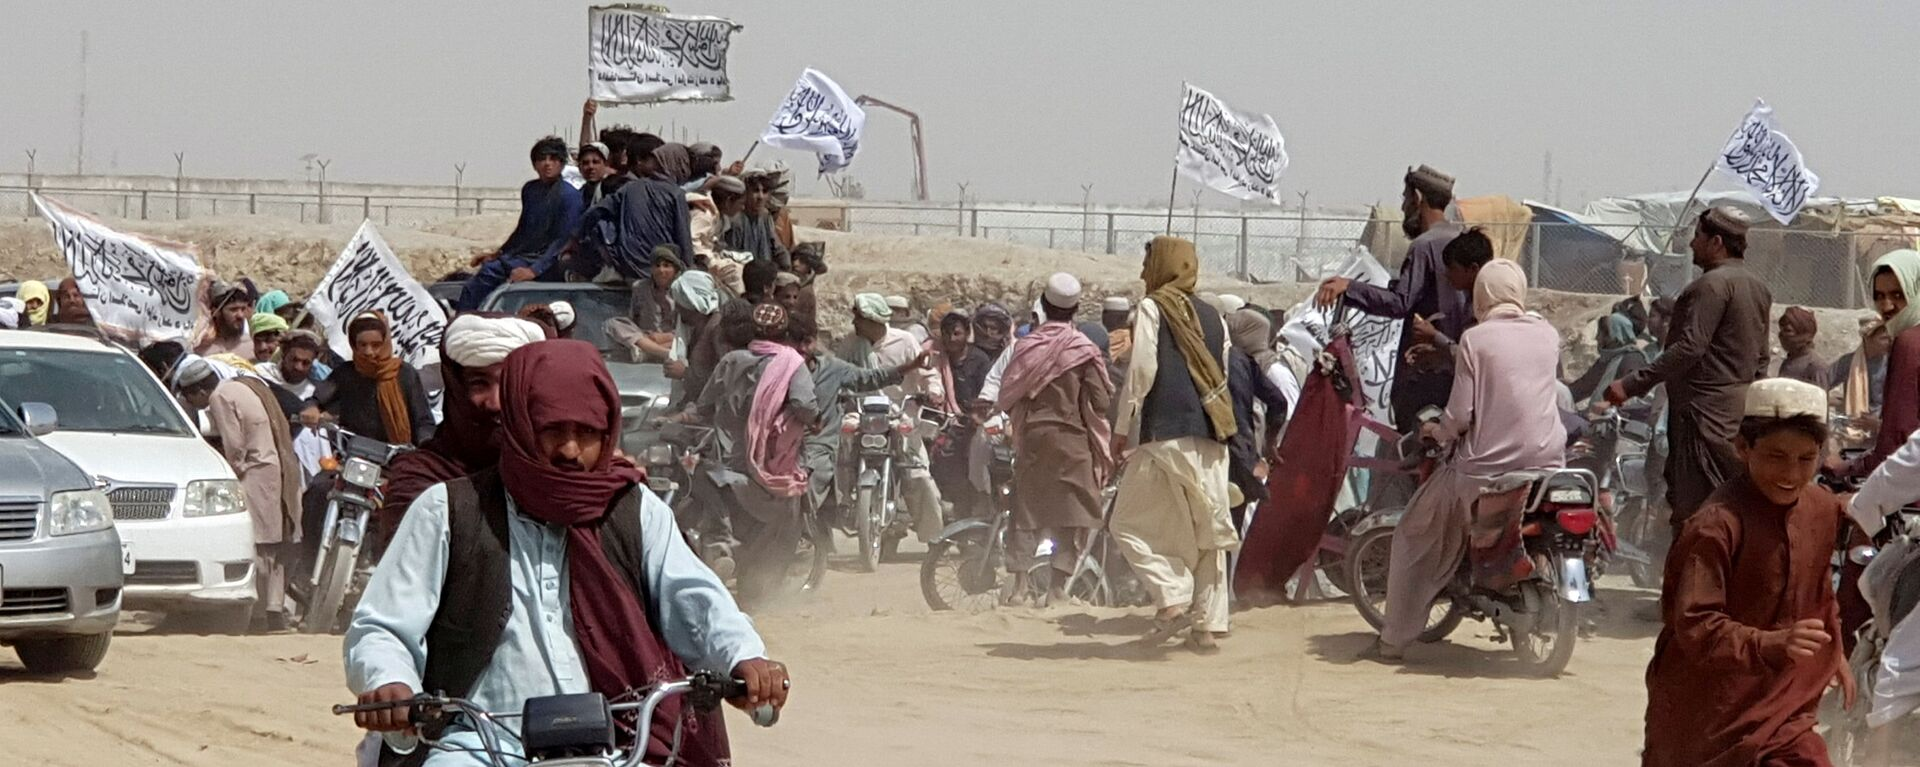 People on vehicles, holding Taliban flags, gather near the Friendship Gate crossing point in the Pakistan-Afghanistan border town of Chaman, Pakistan July 14, 2021 - Sputnik International, 1920, 23.07.2021